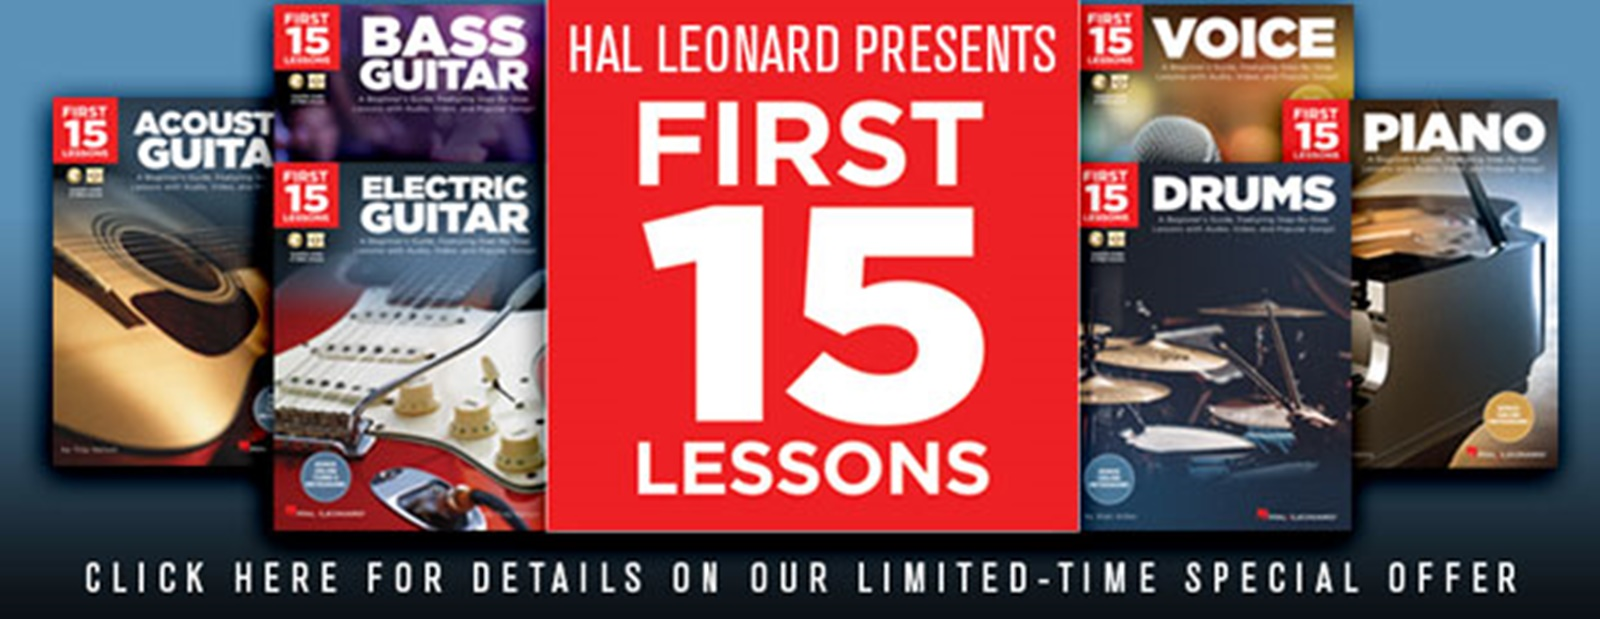 First 15 Lessons